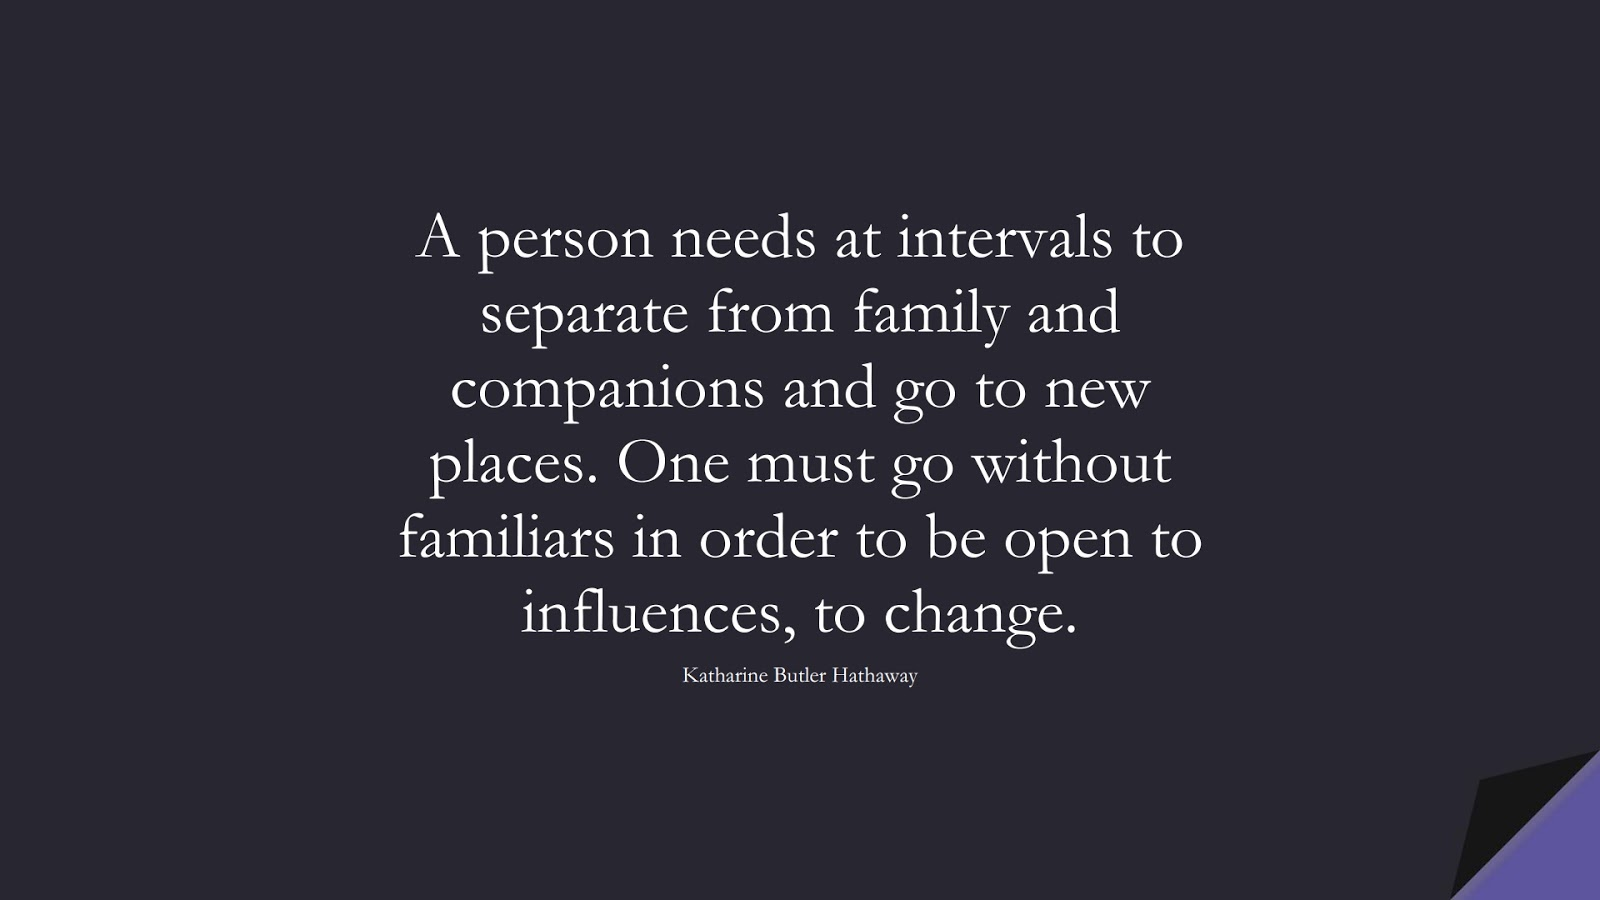 A person needs at intervals to separate from family and companions and go to new places. One must go without familiars in order to be open to influences, to change. (Katharine Butler Hathaway);  #ChangeQuotes